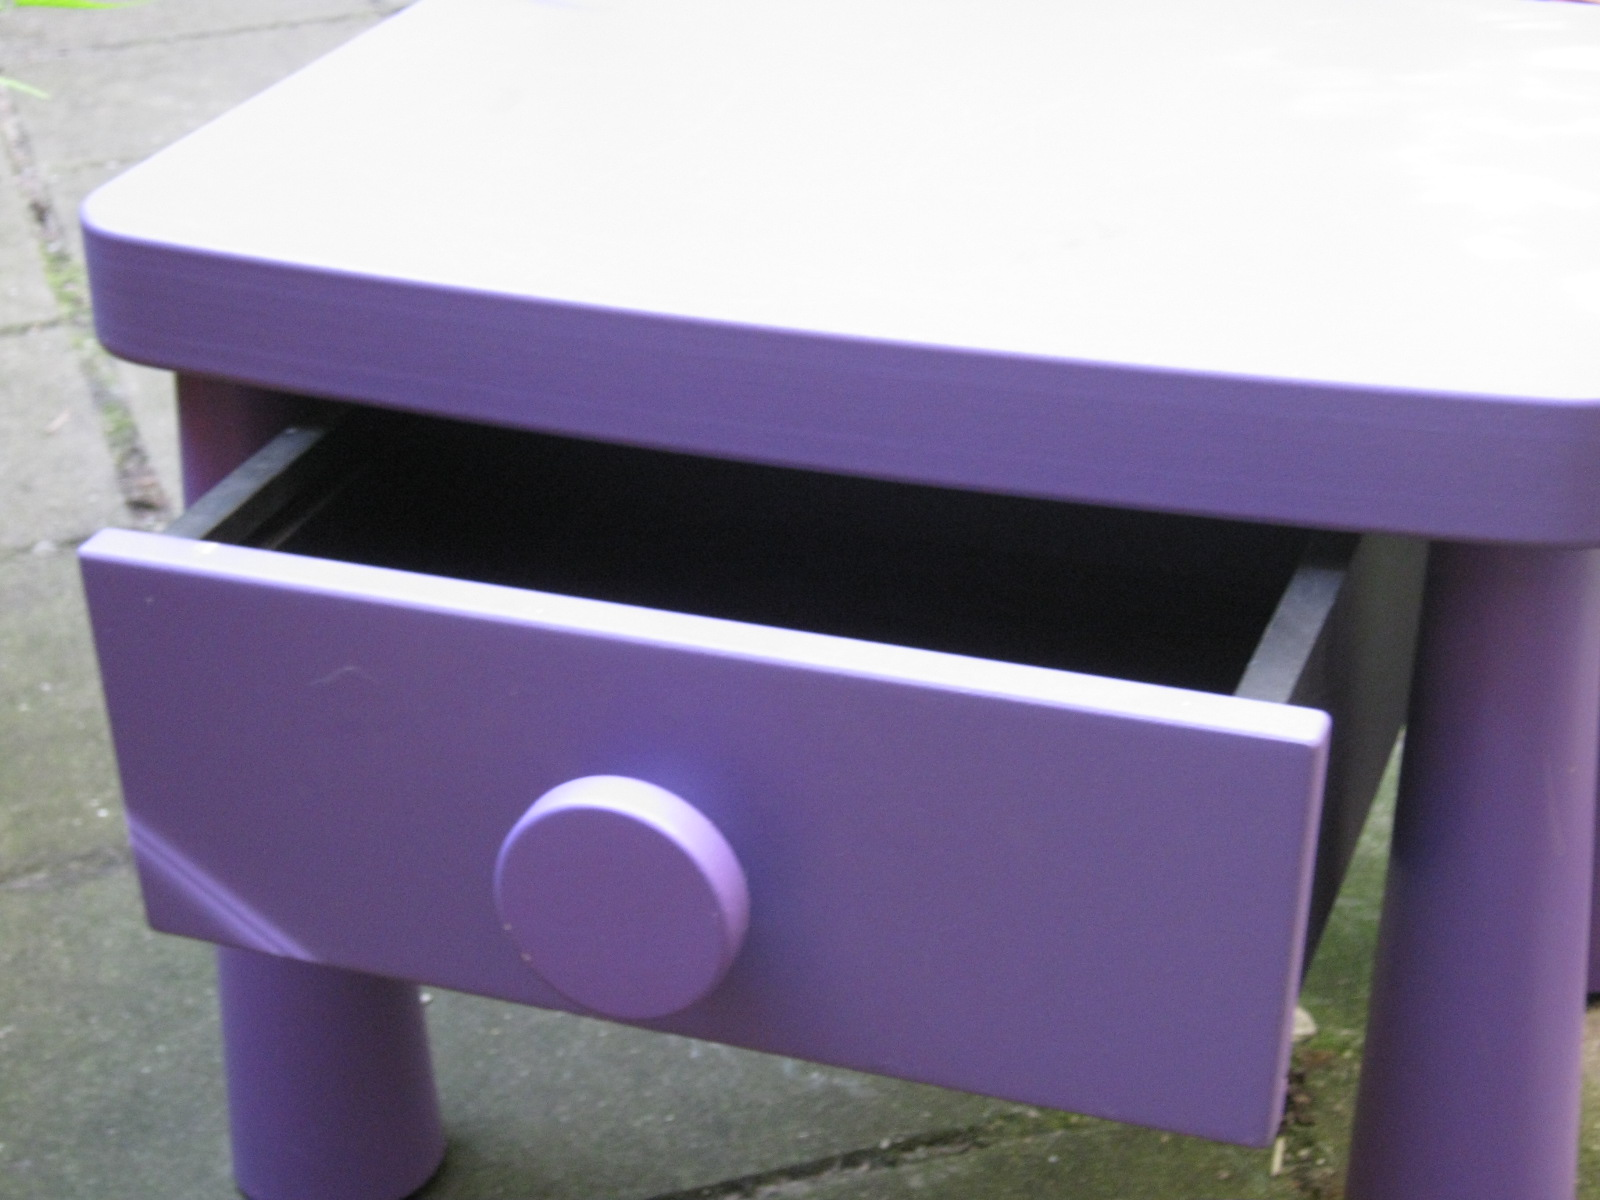 Ikea kids table mammut - My Reader S Information Greatly Helped My Further Research Which Learned Me It Belongs To The Ikea Mammut Product Line For Children Which Was Created In